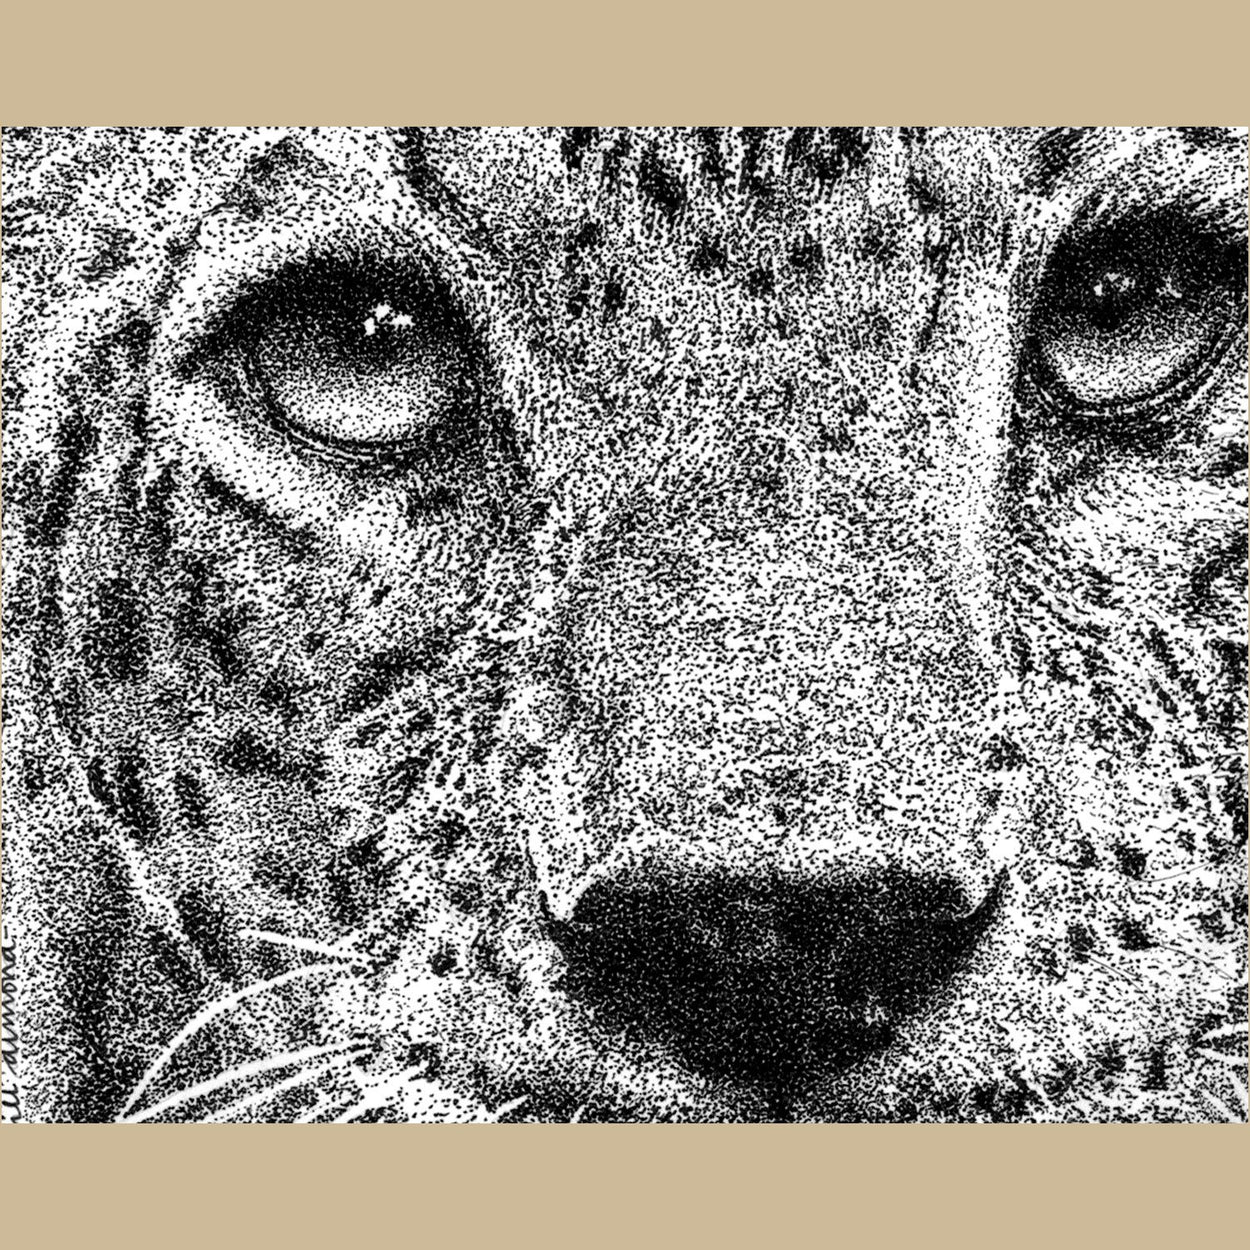 Leopard Pen Stippling Close-Up - The Thriving Wild